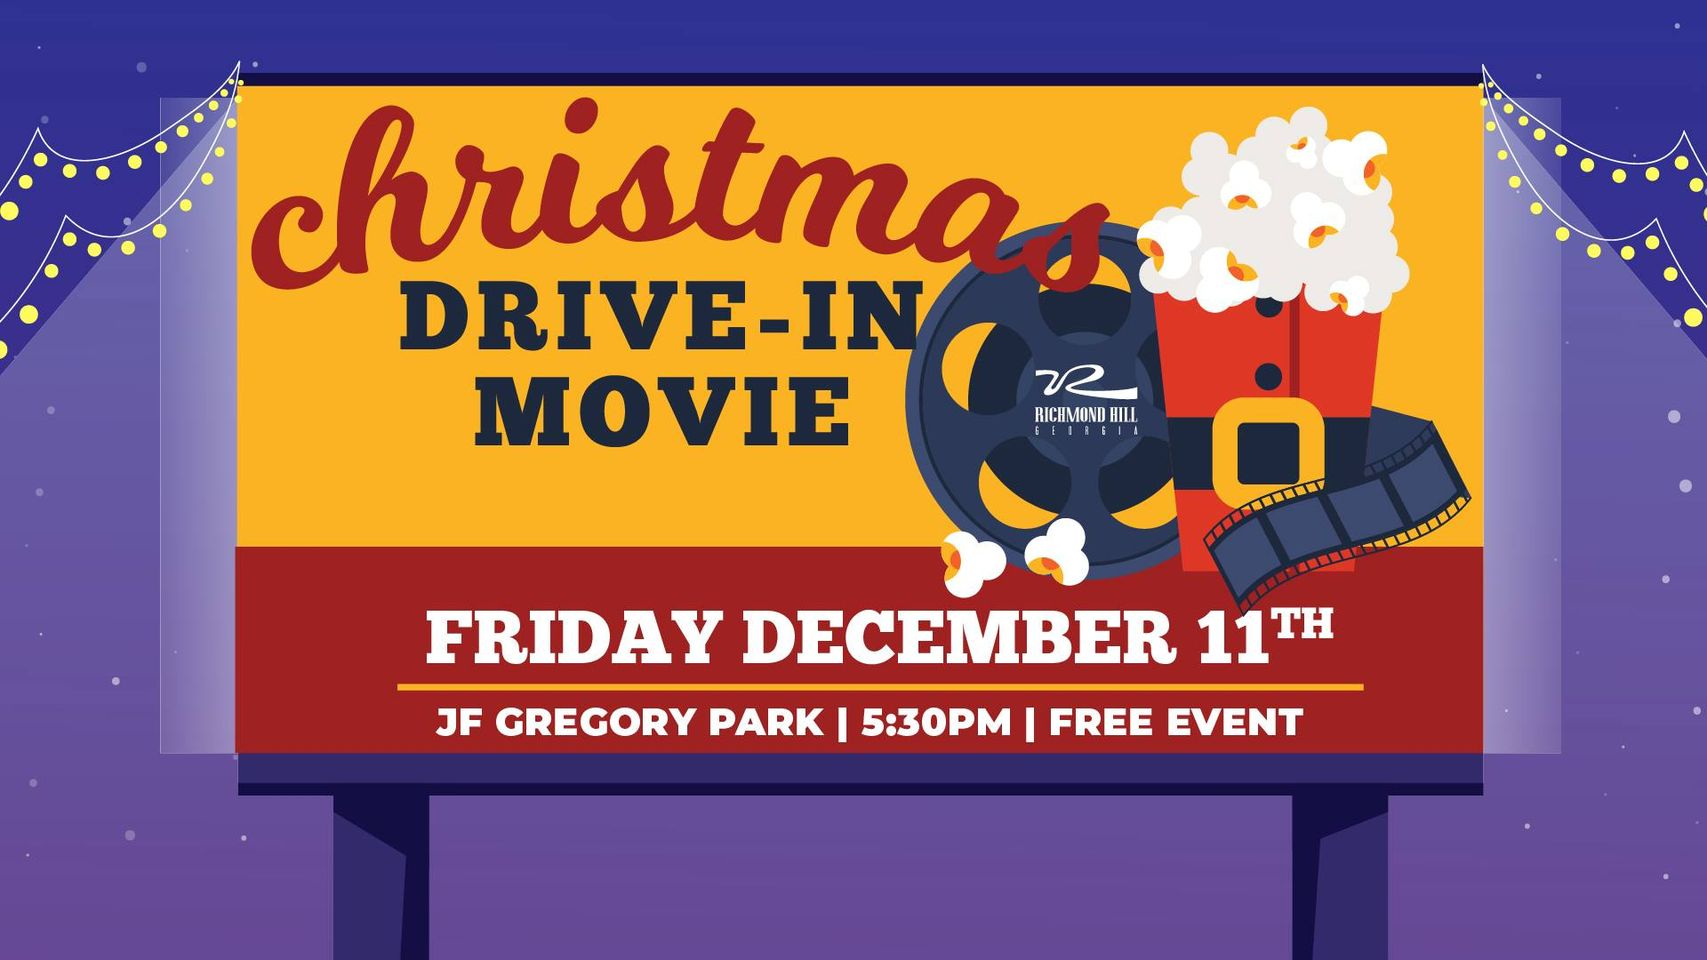 Christmas Drive-In Movie Richmond Hill 2020 Holidays